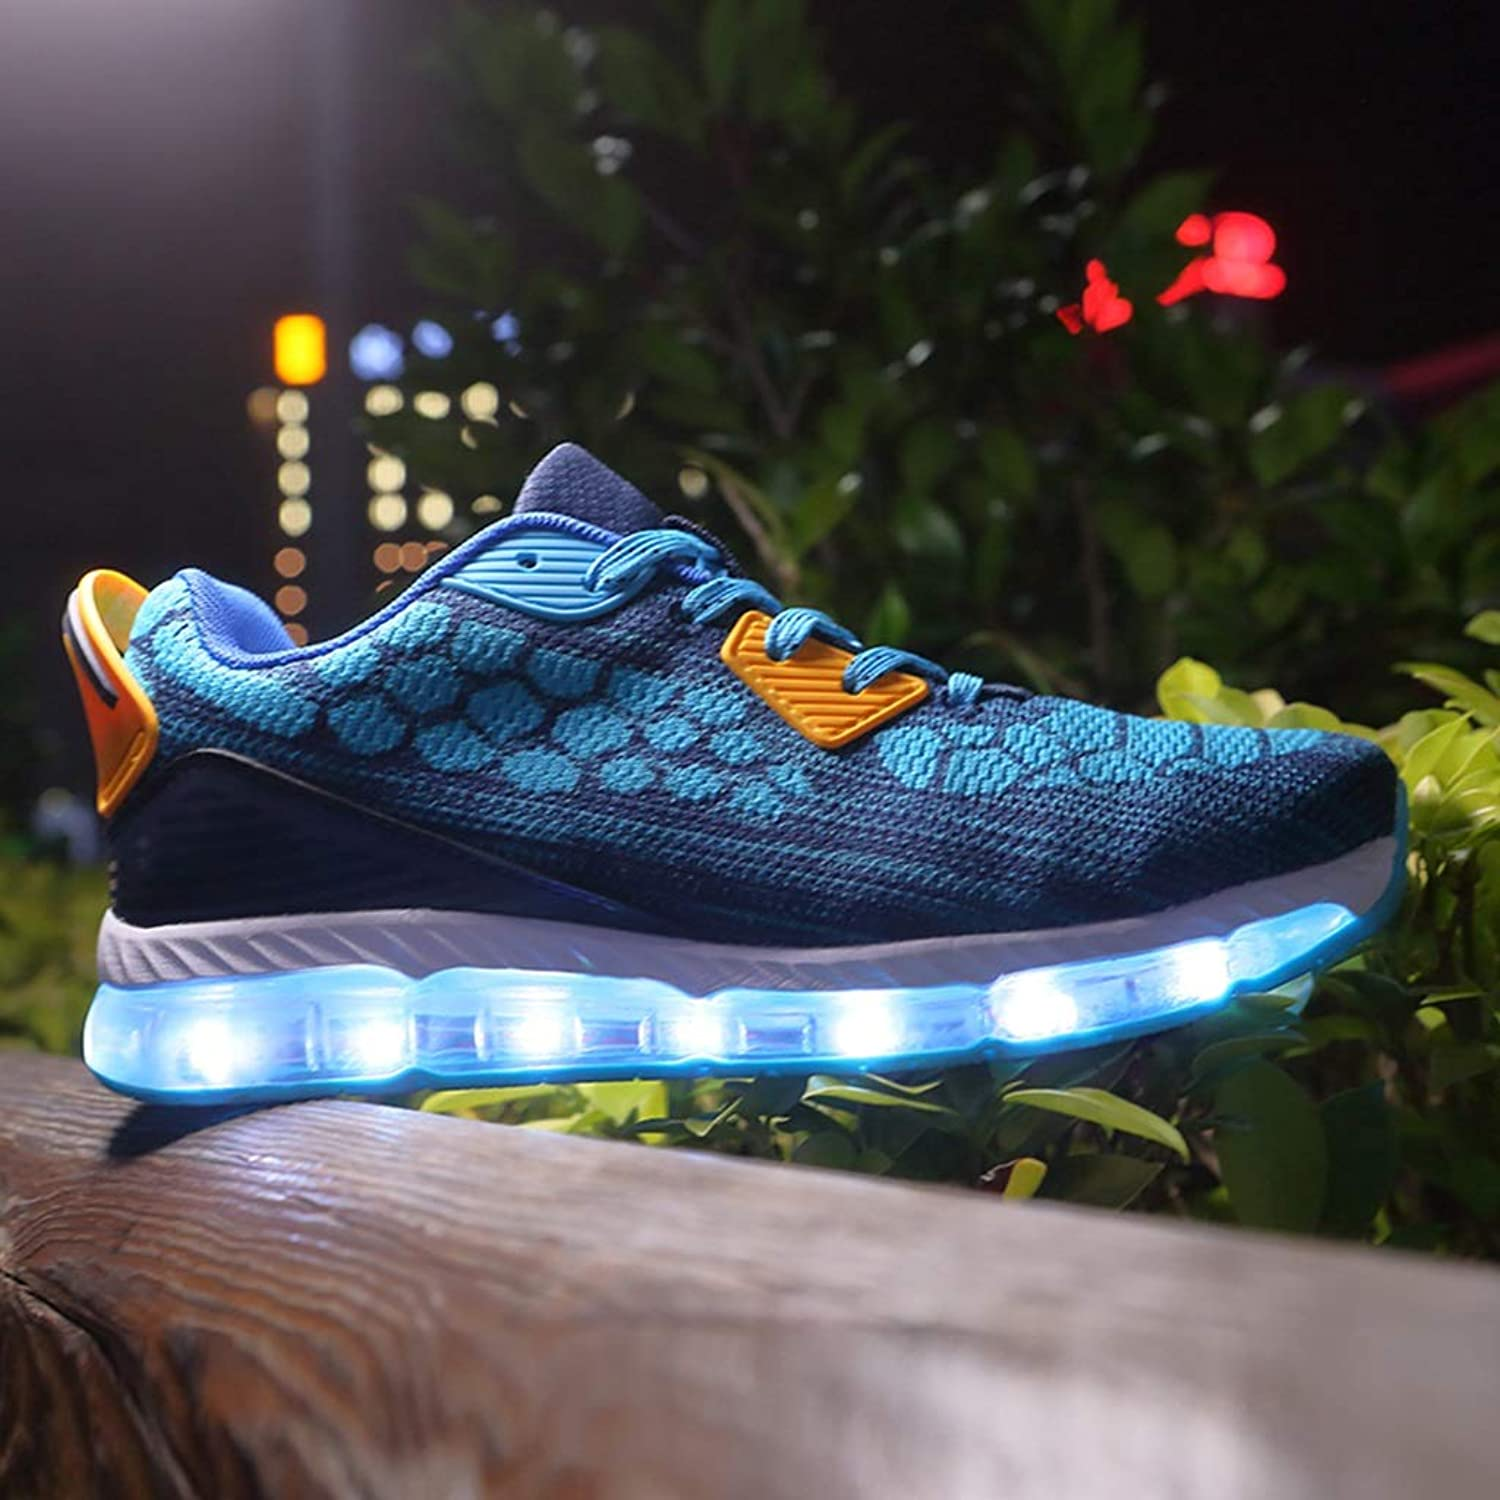 Peng ye Stretch Cloth Breathable Mesh LED colorful Lights Illuminating shoes USB Charging Flash Ghost Dance shoes Luminous shoes Sweat Comfort (color   C, Size   39EU)